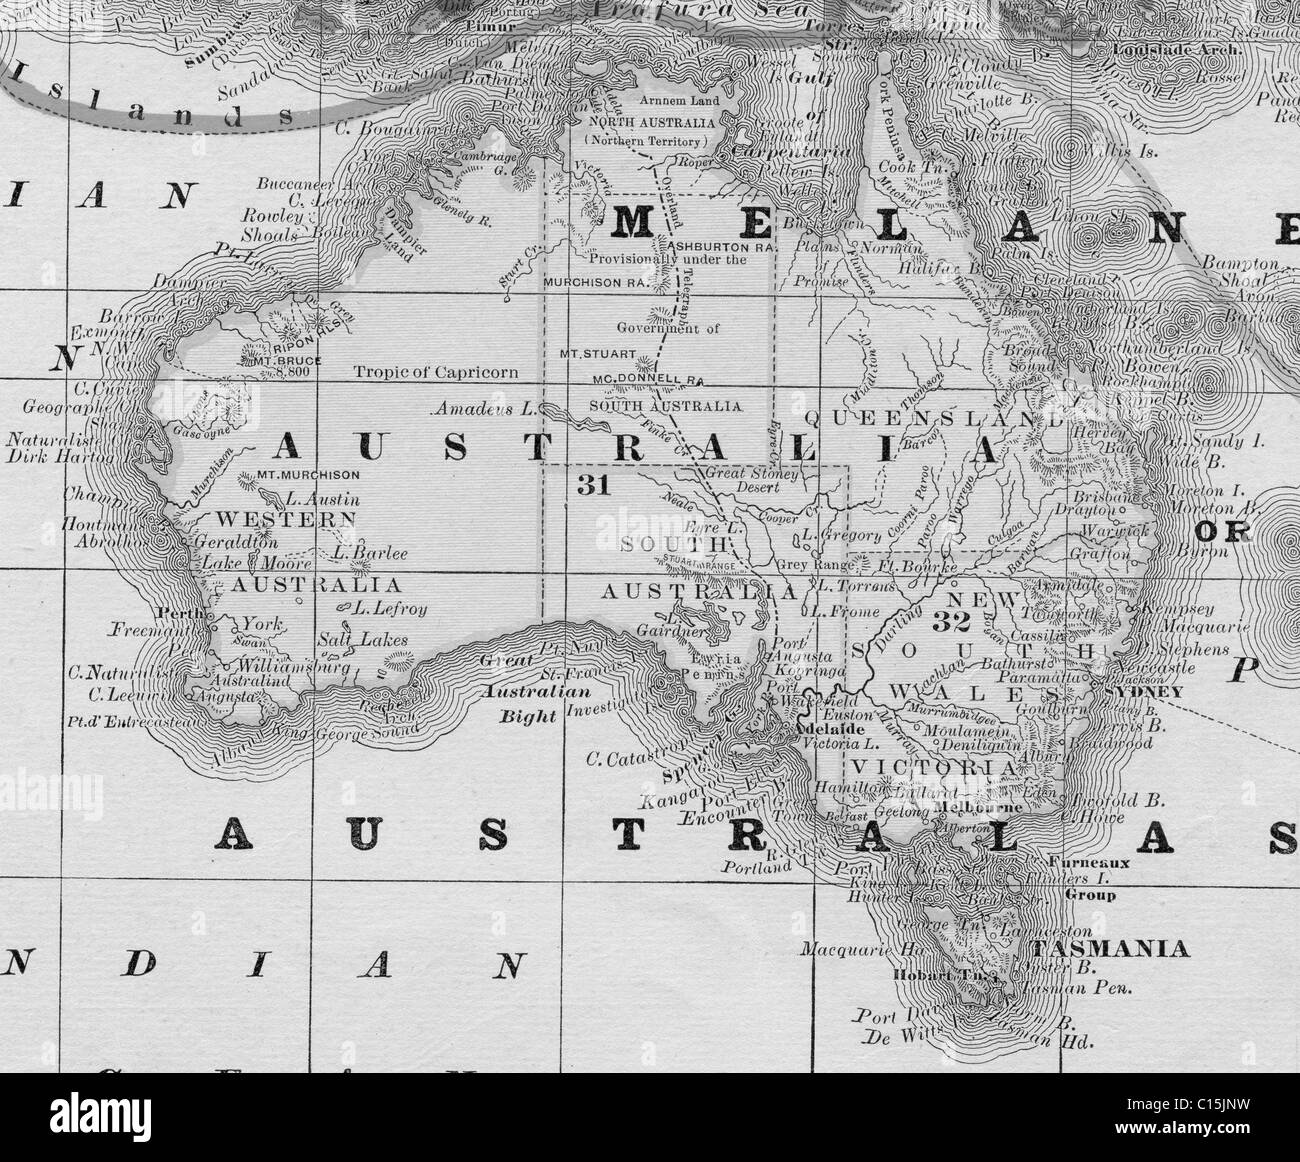 Australia Map Black And White.Map Of Australia Black And White Stock Photos Images Alamy